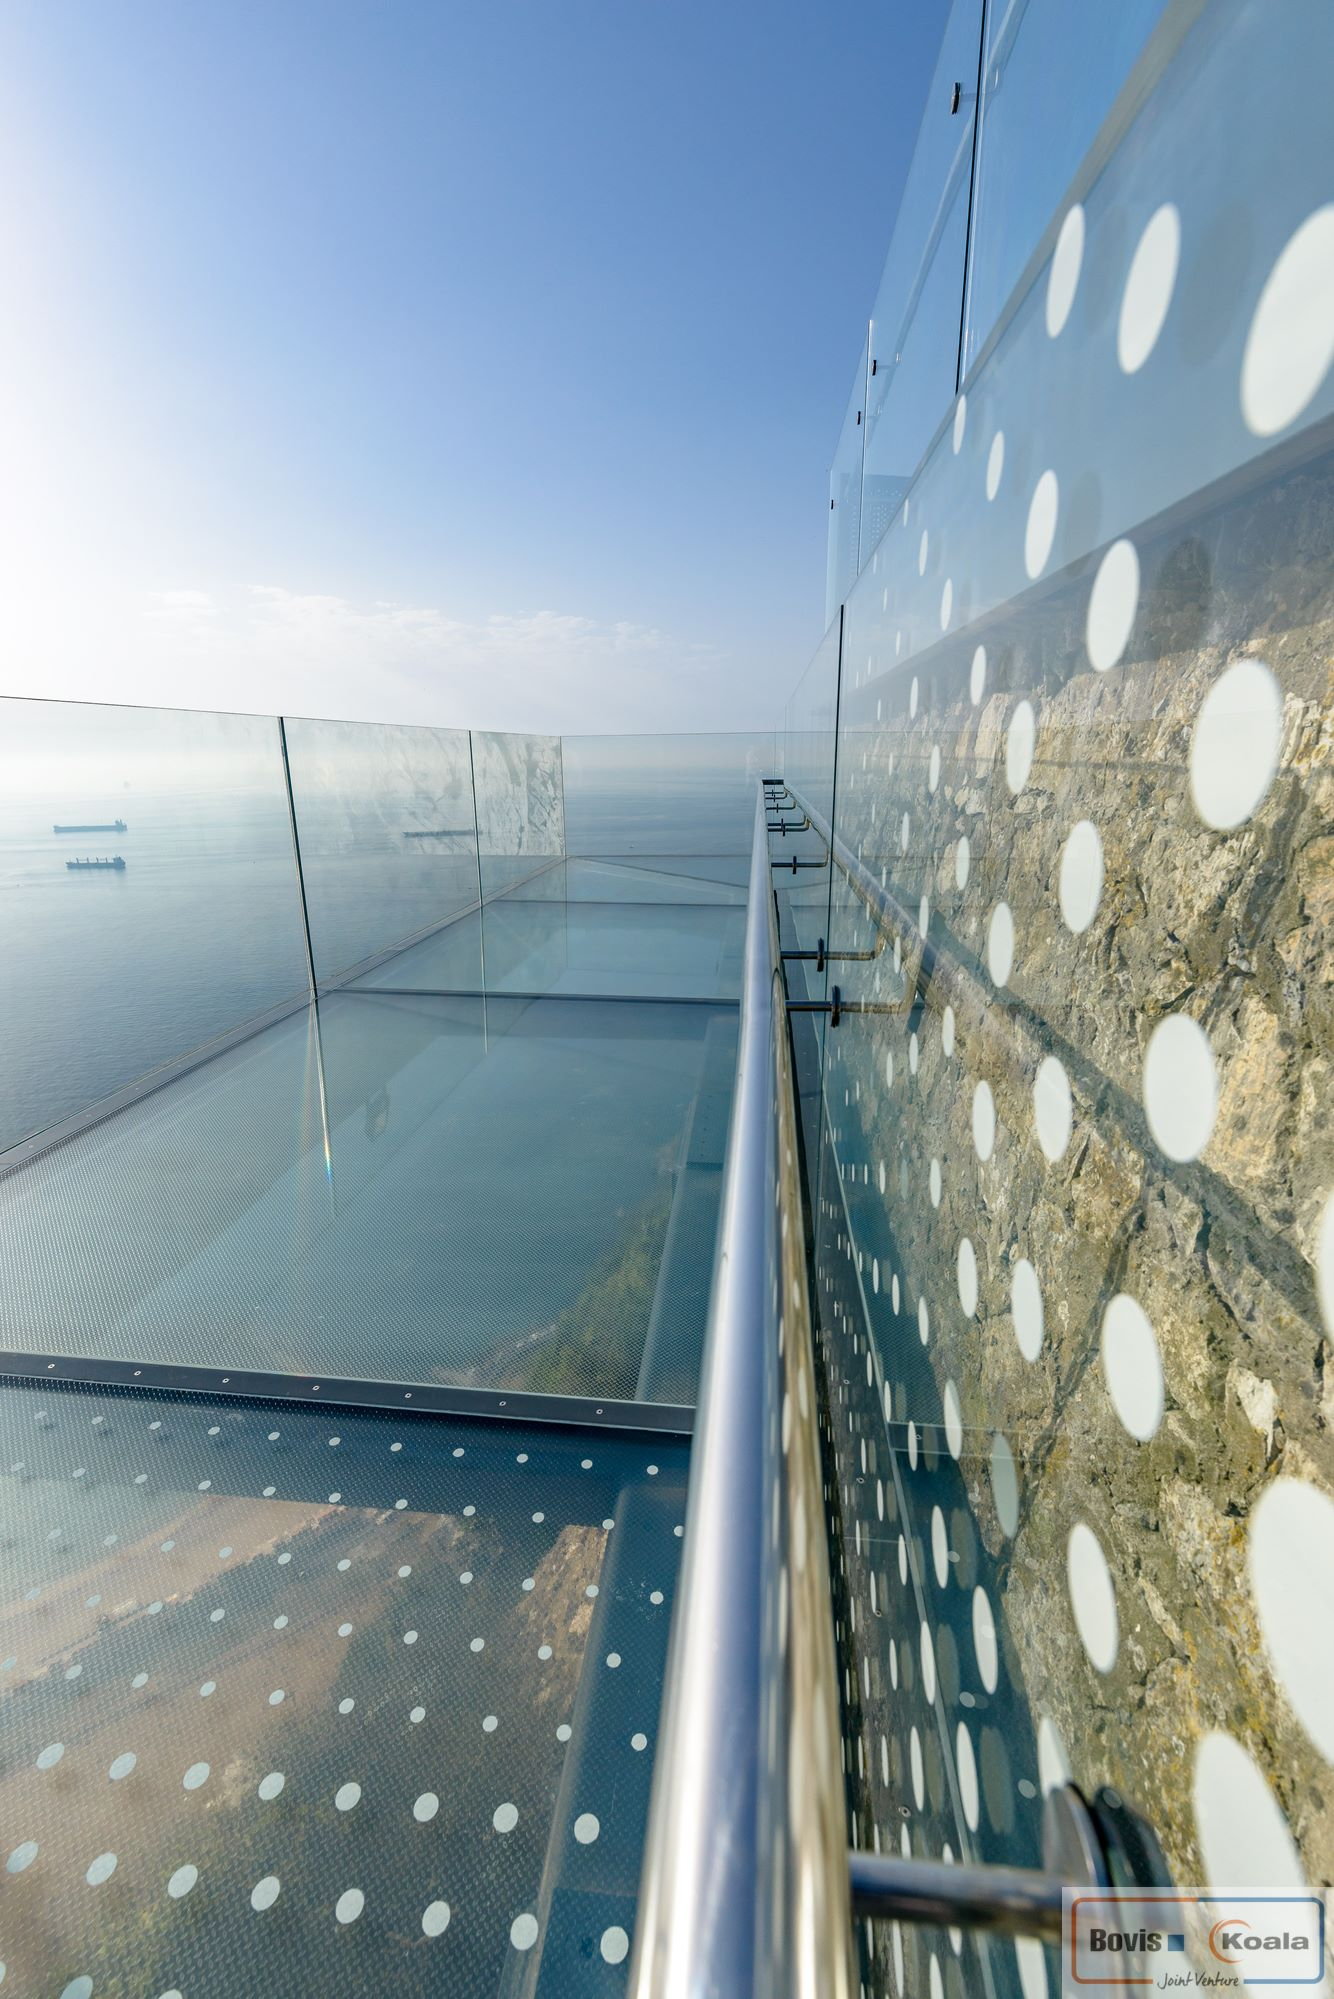 Bovis Koala Skywalk Gibraltar 13